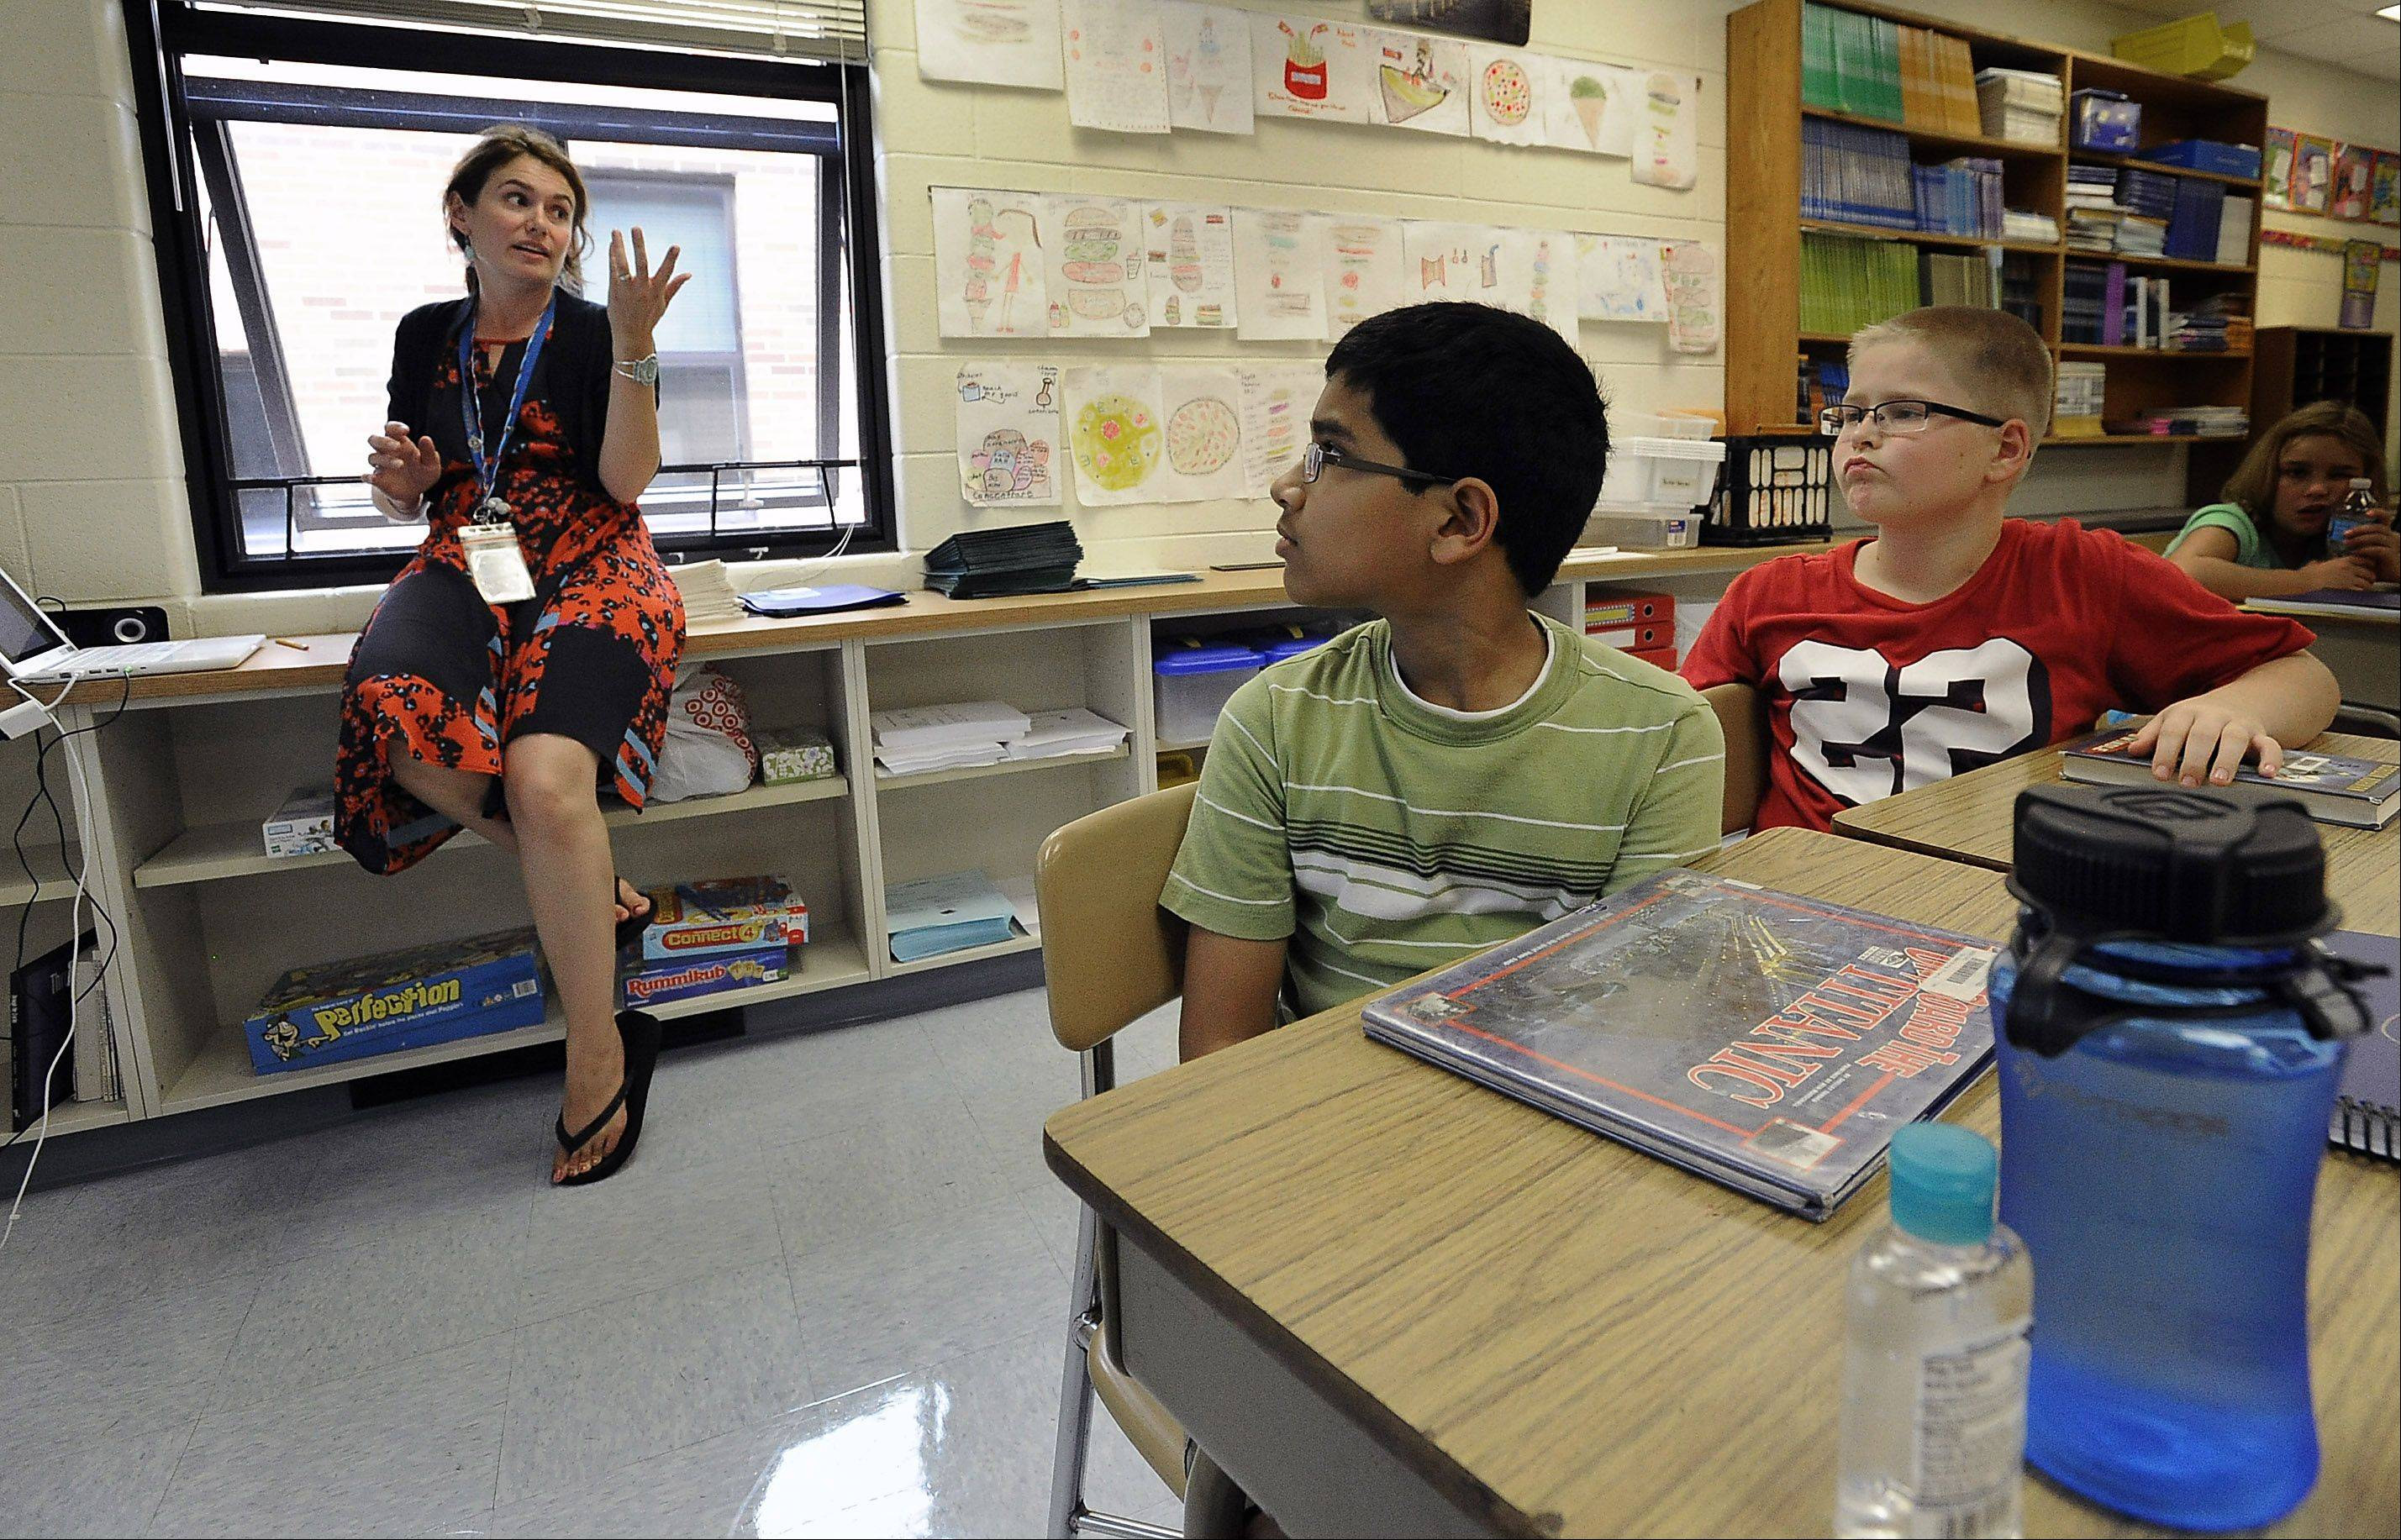 Fourth-grade teacher Lisa Moore sweats it out with students Sai Tarra and Ihor Nychay and the rest of her classroom without air conditioning Monday at Mark Twain Elementary School in Wheeling.